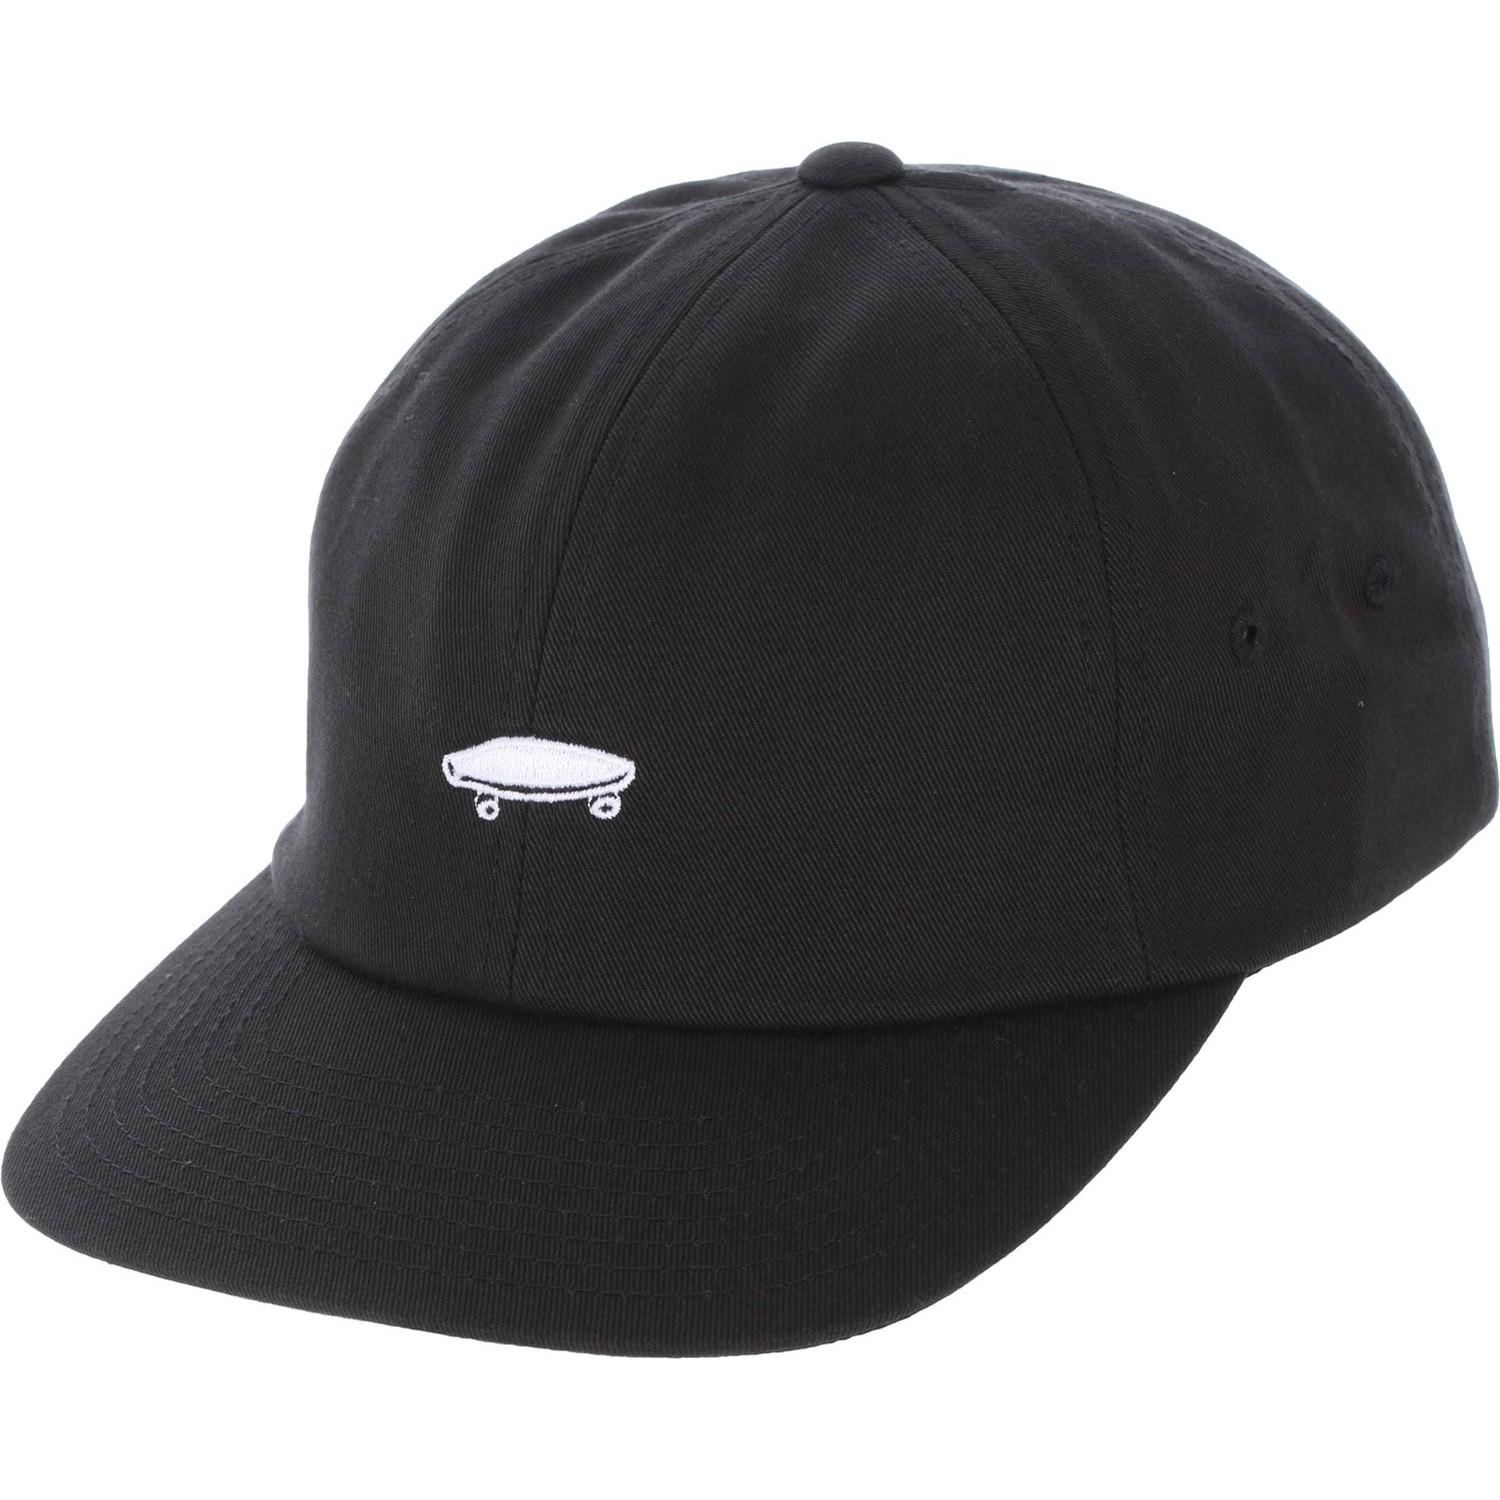 Salton II Hat (Black/White)